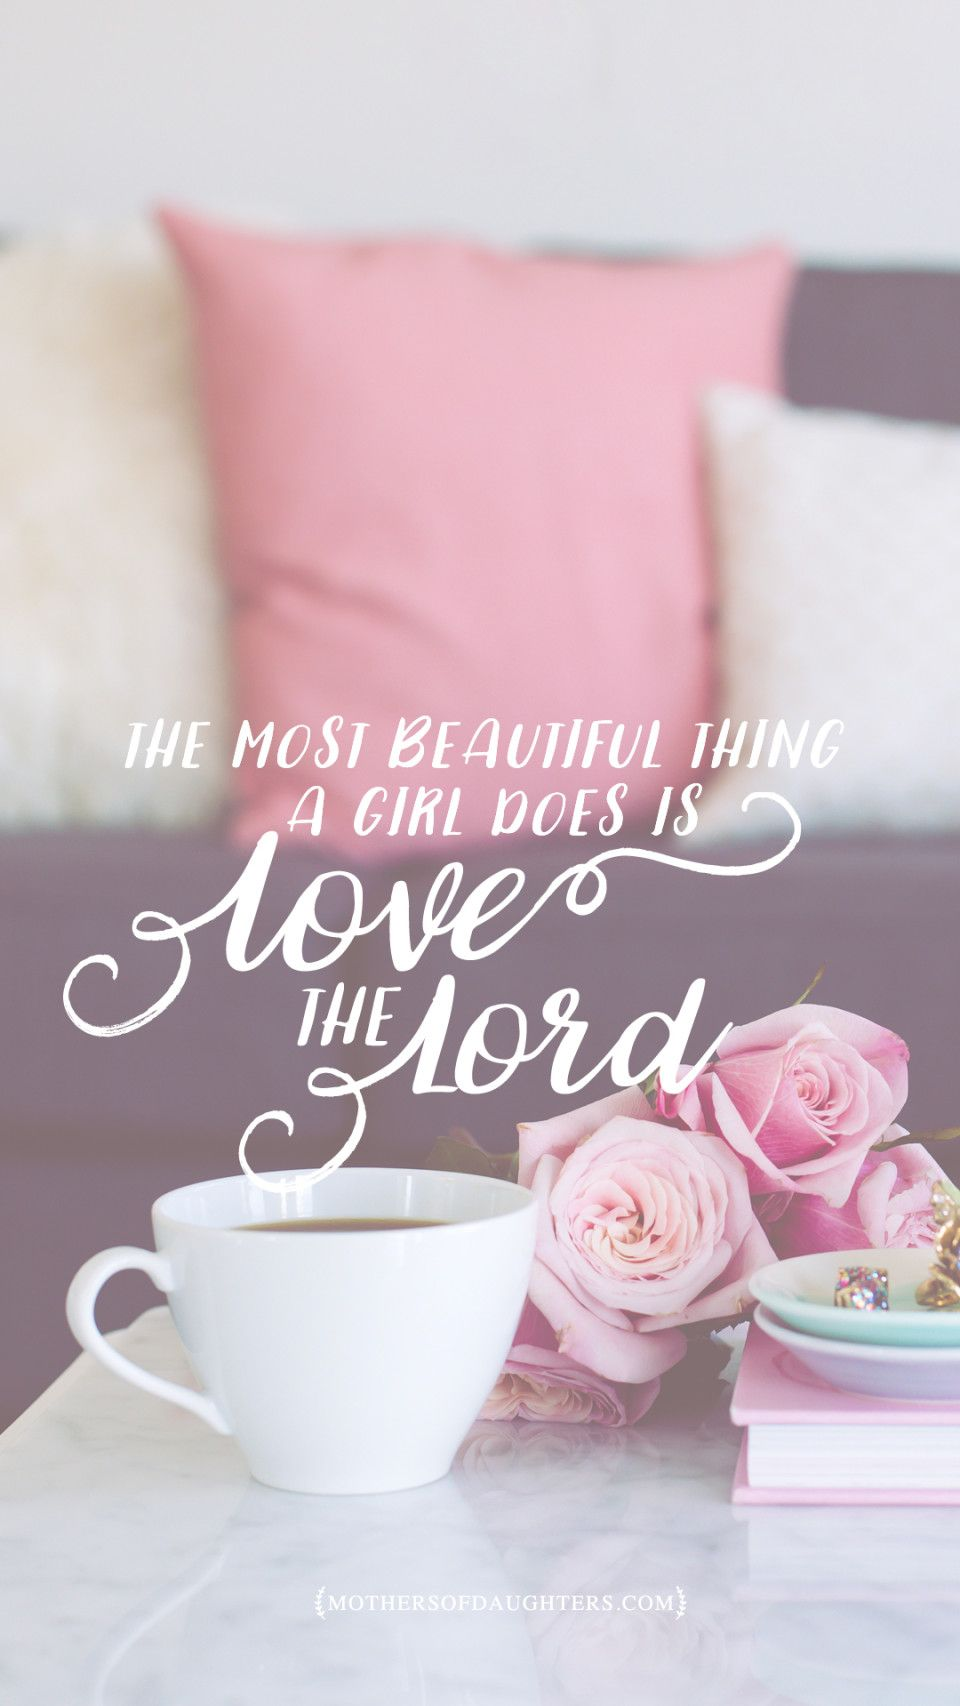 The Most Beautiful Thing A Girl Does Is Love The Lord Free Lockscreens Mothers Of Daughters Christian Wallpaper Bible Quotes Faith